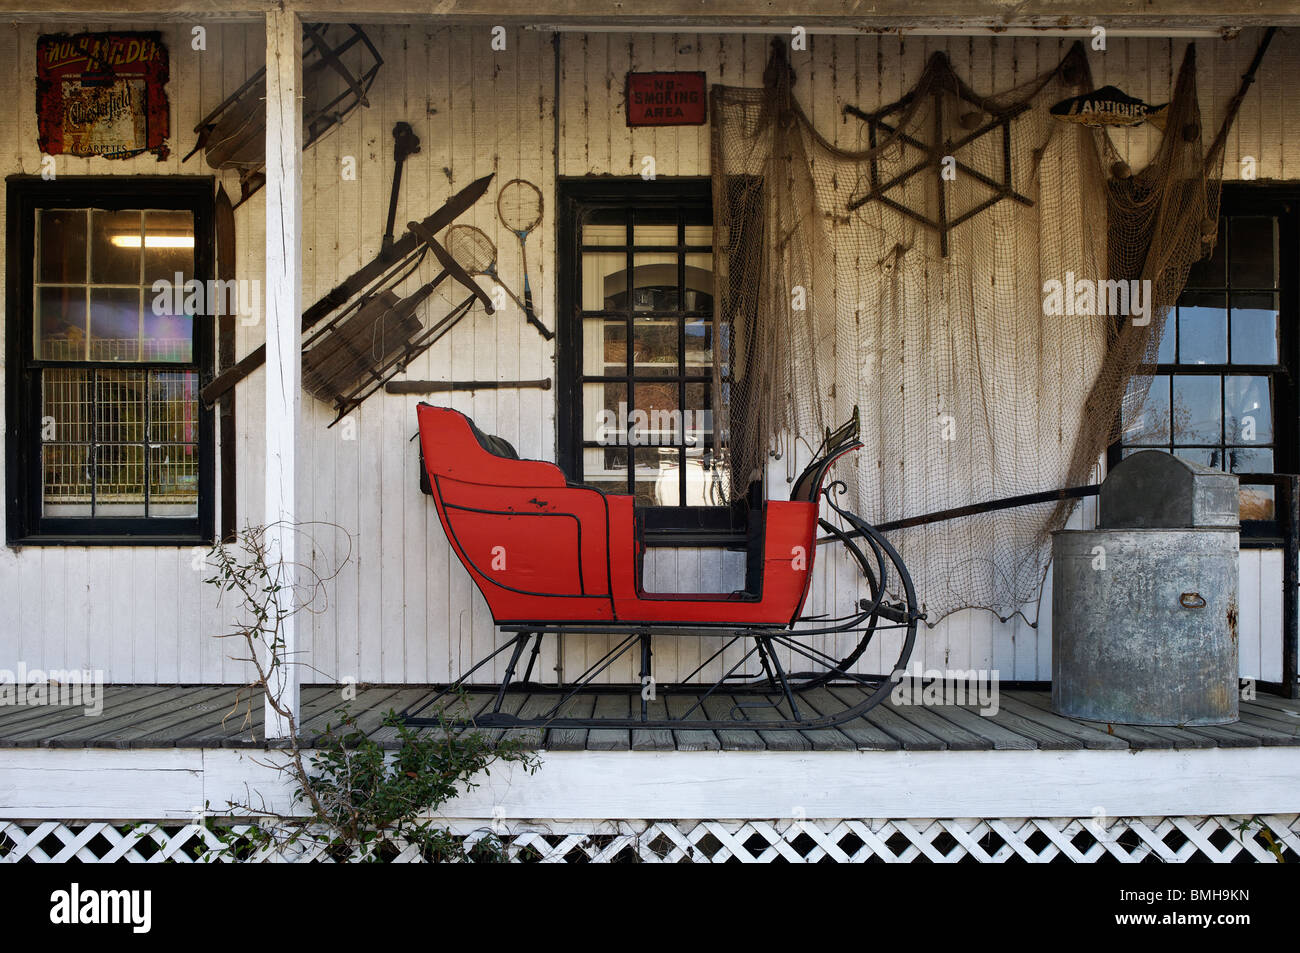 Red Sleigh on the Front Porch at the Thieves Market Antique Store in Mount Pleasant, South Carolina - Stock Image